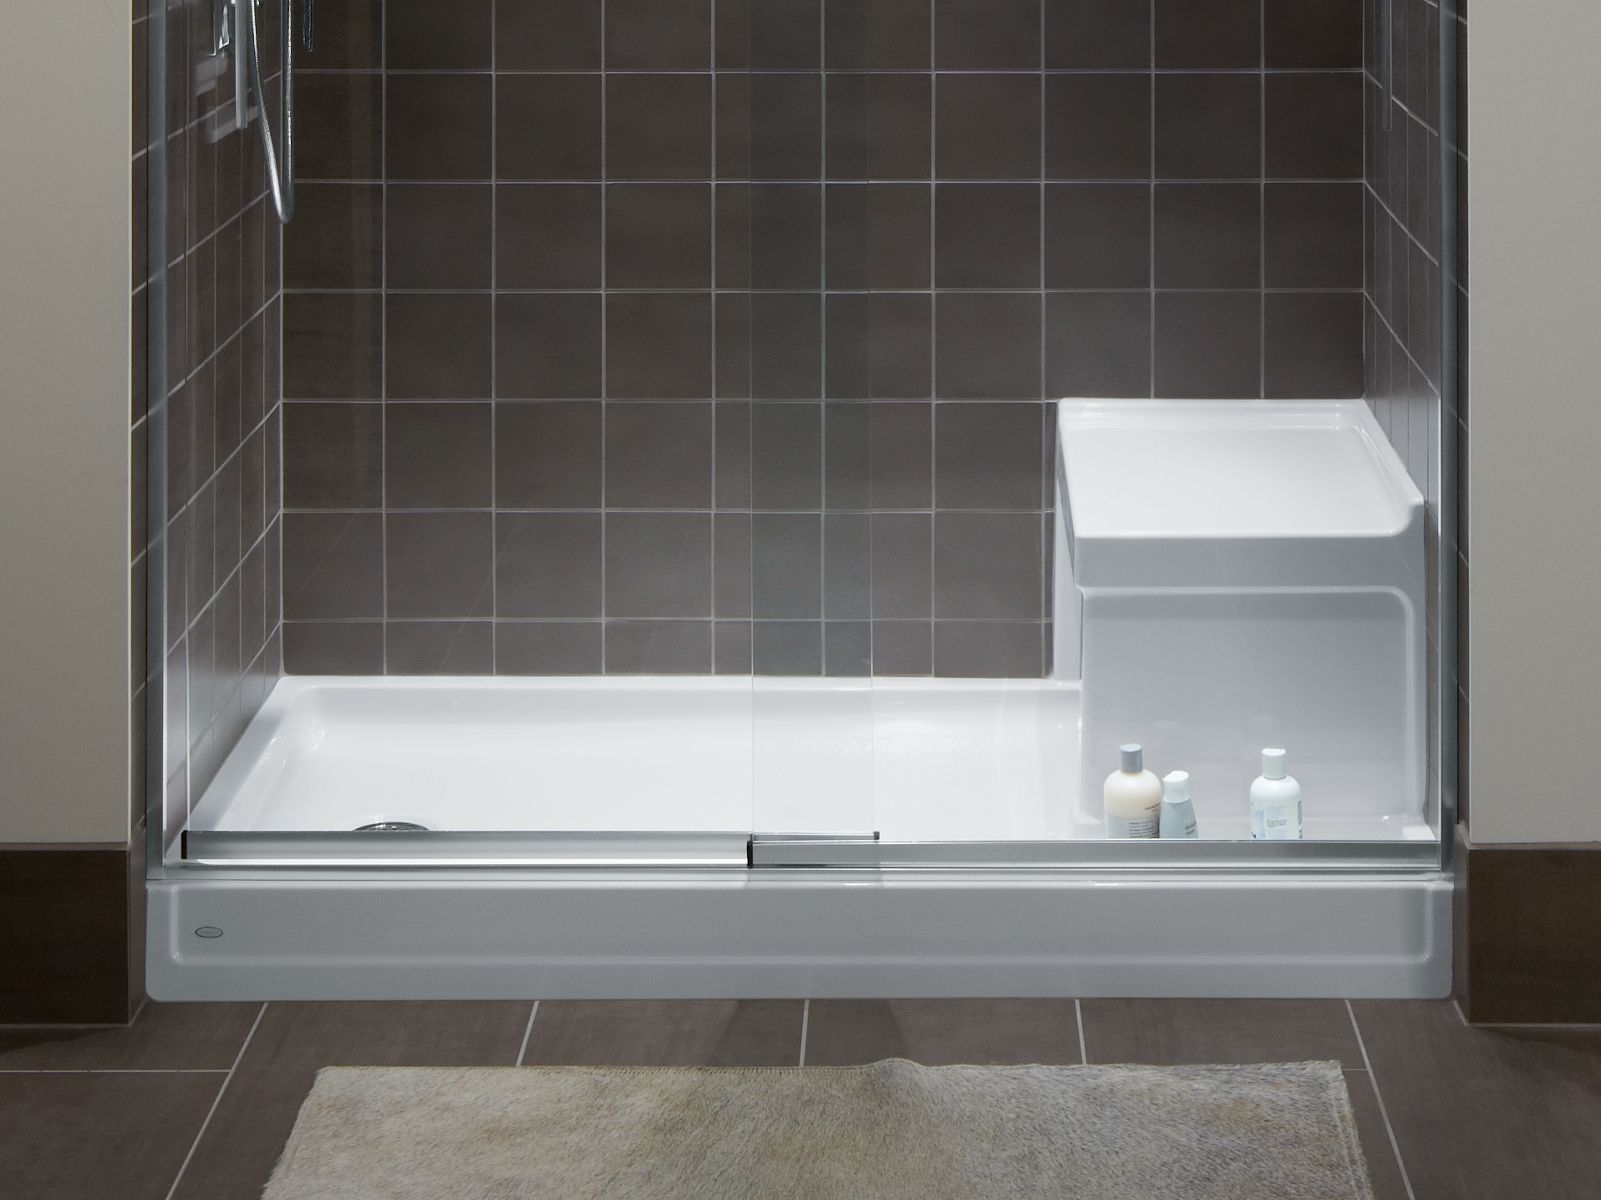 Shower Space Walls Amp Bases Guides Bathroom Kohler